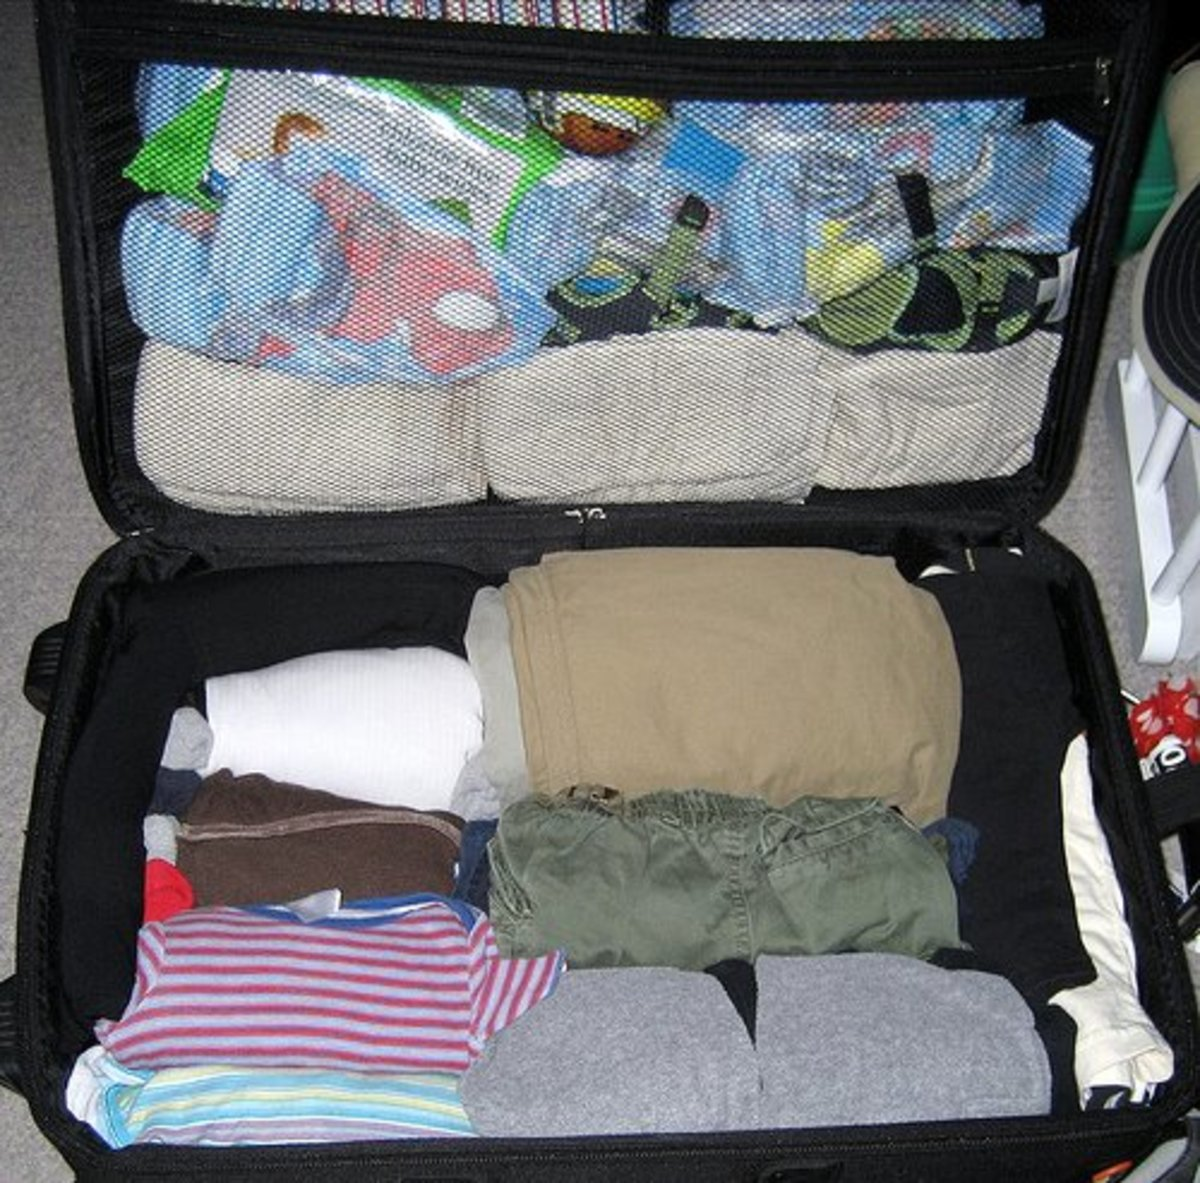 How to Travel Light - Packing Tips for Travelling